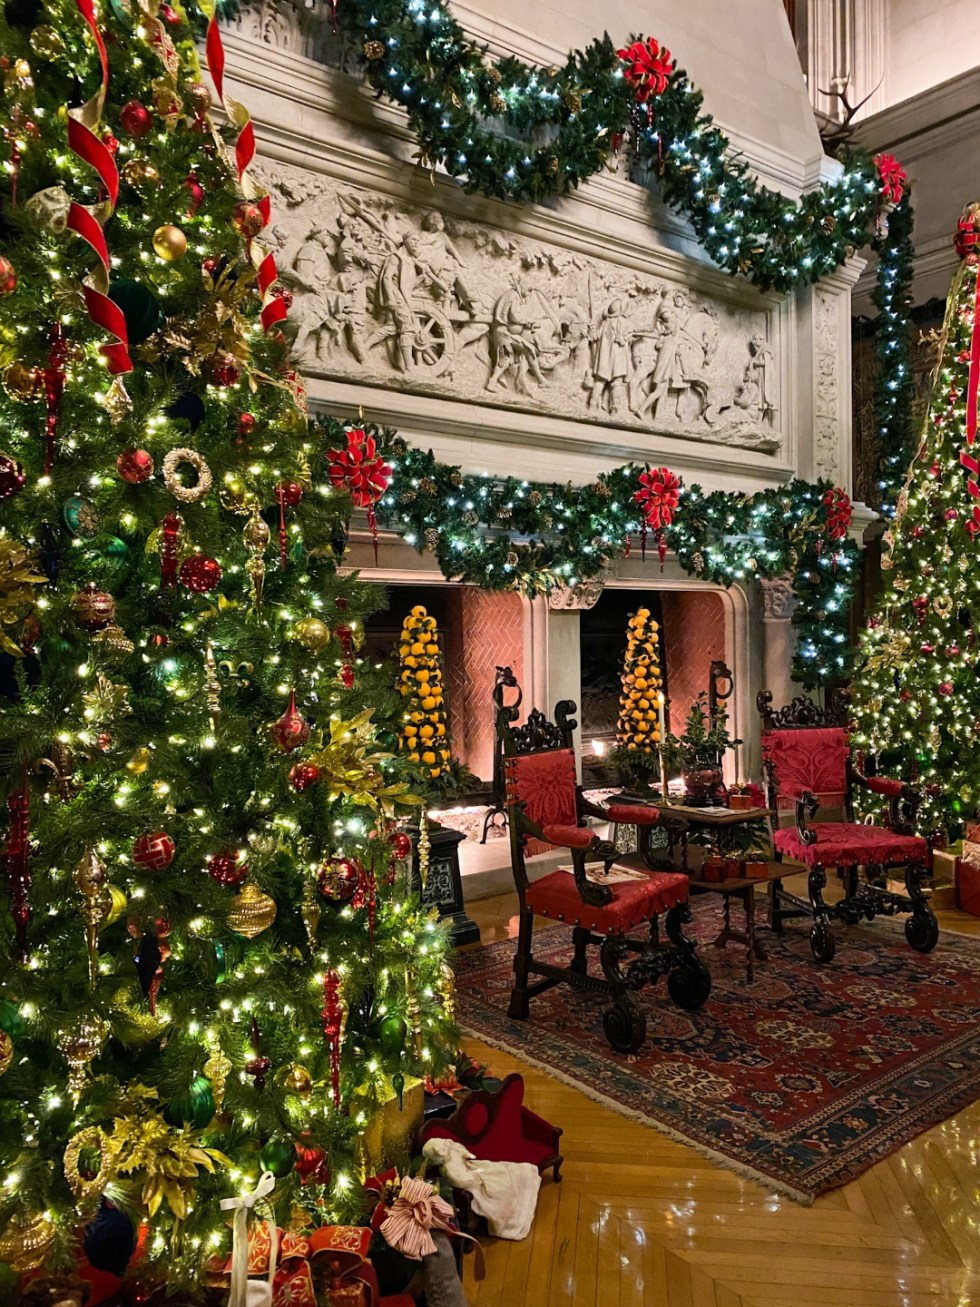 Christmas in Asheville: a Weekend Getaway During the Holidays - I'm Fixin' To - @imfixintoblog |Christmas in Asheville NC by popular NC lifestyle blog, I'm Fixin' To: image of two large Christmas trees next to a first place decorated with garland at the Biltmore house.